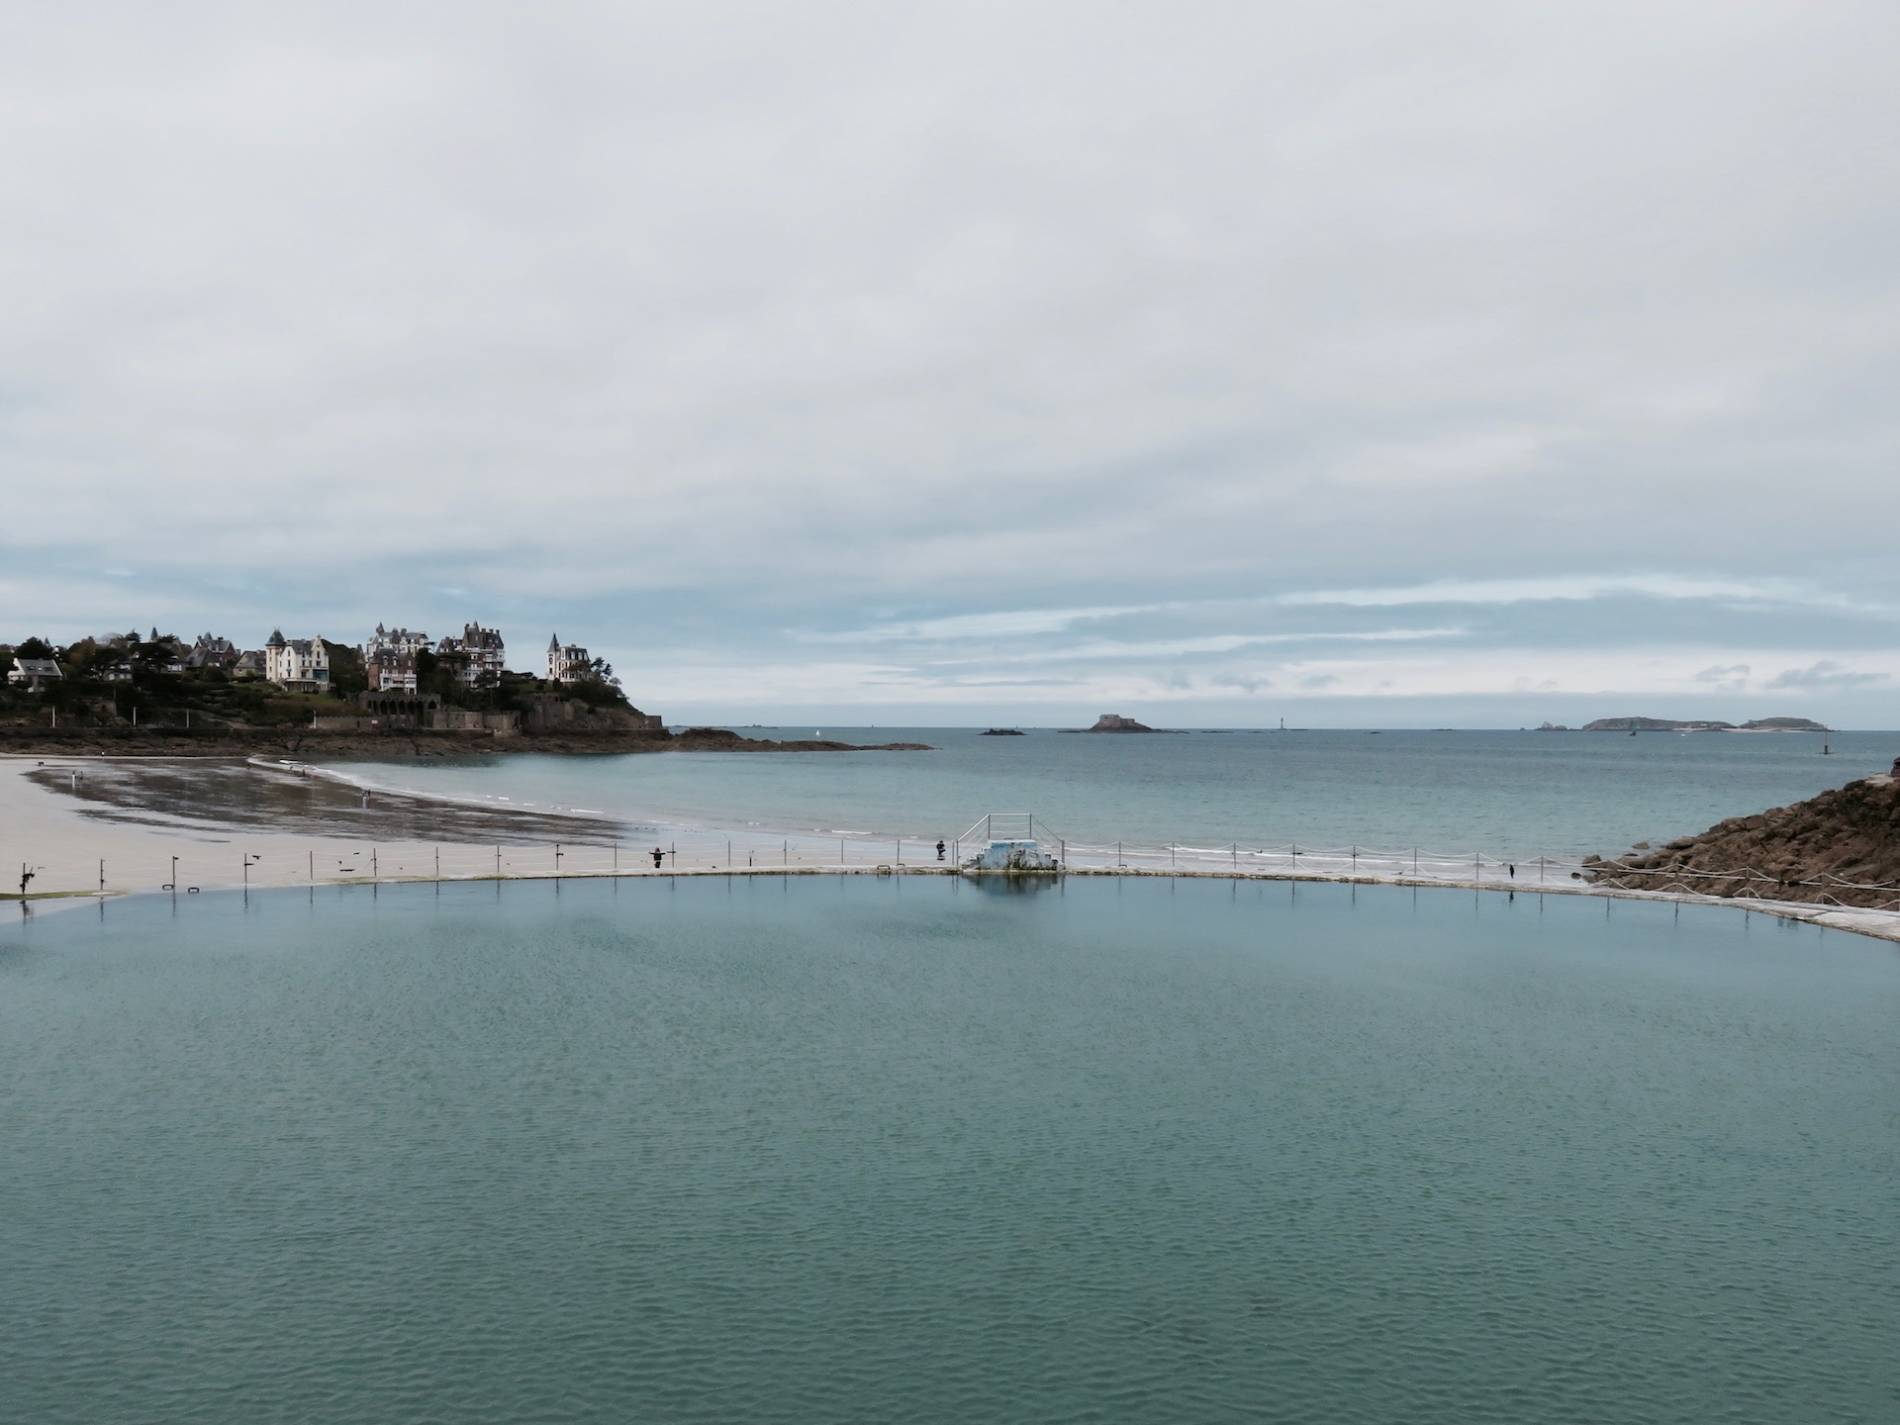 Piscine dinard a day in the world blog voyage for Piscine dinard